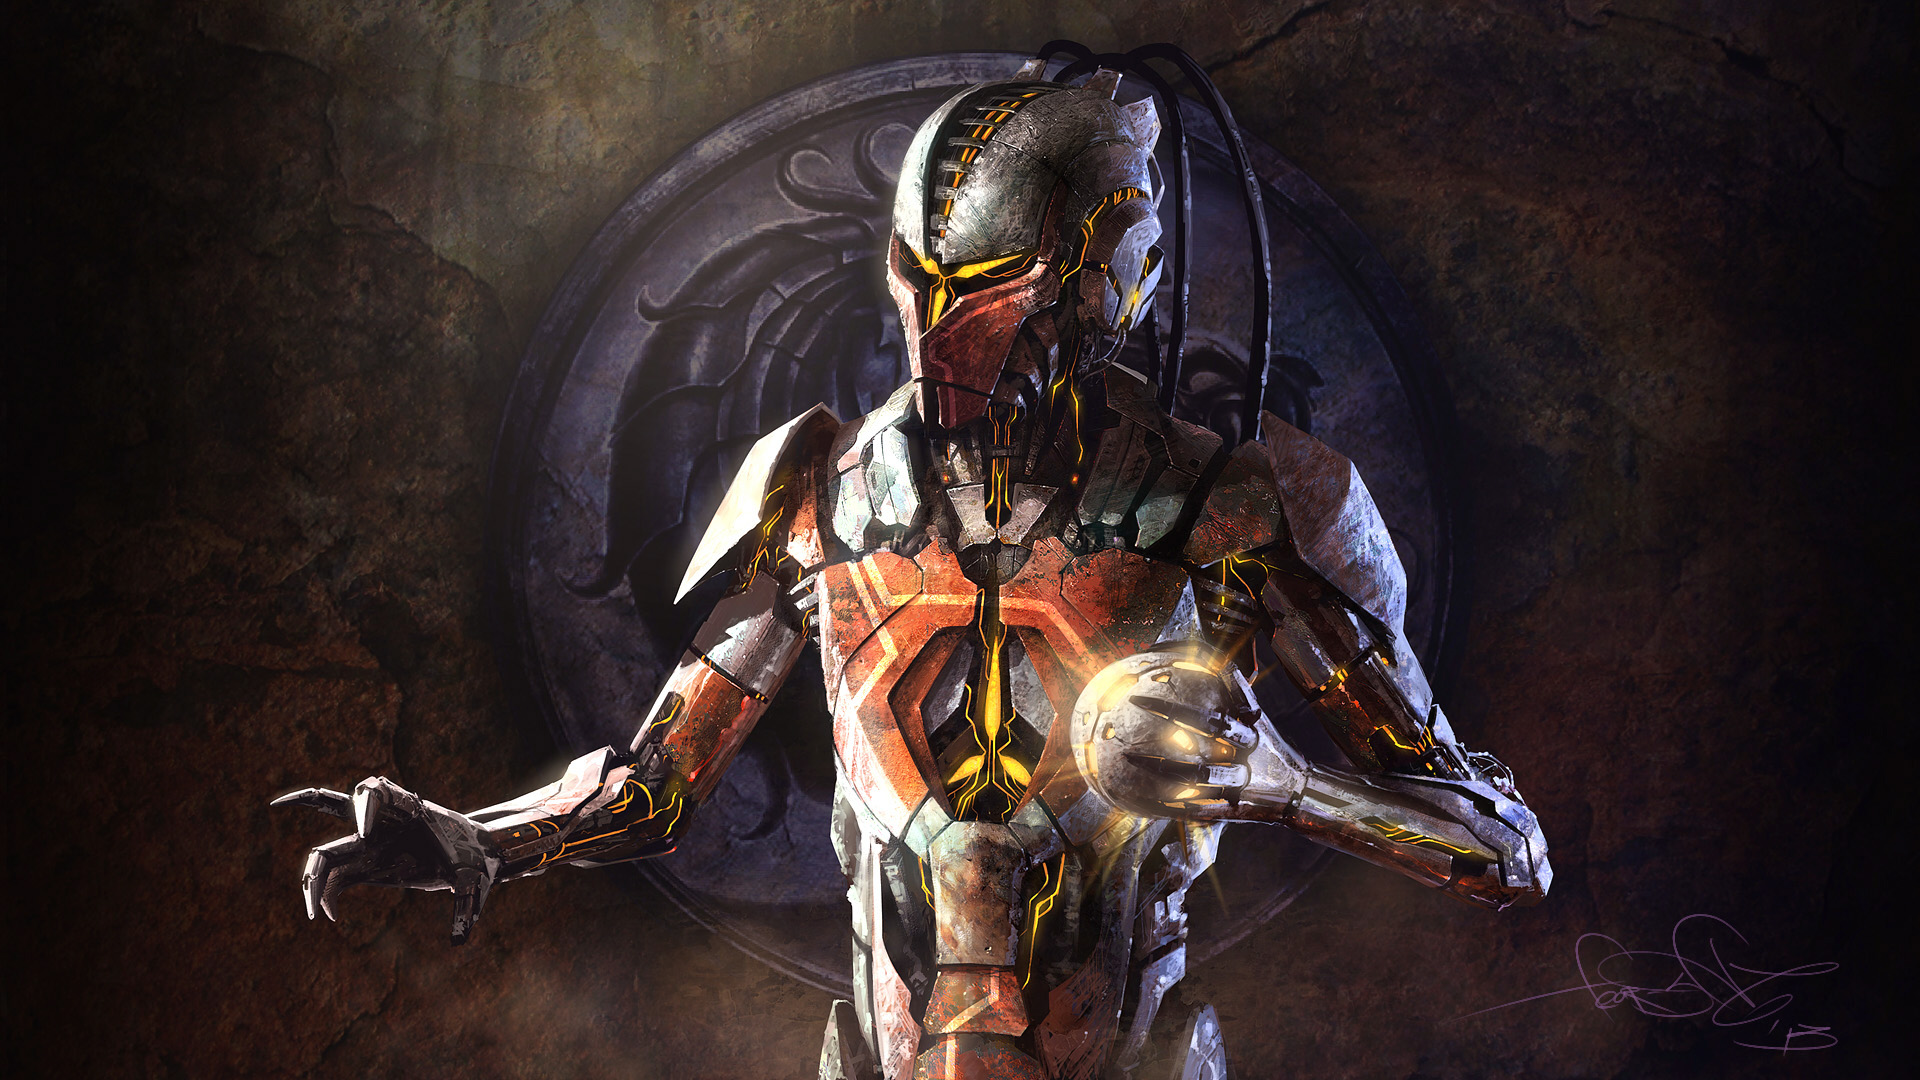 Sektor - Mortal Kombat art by fear-sAs